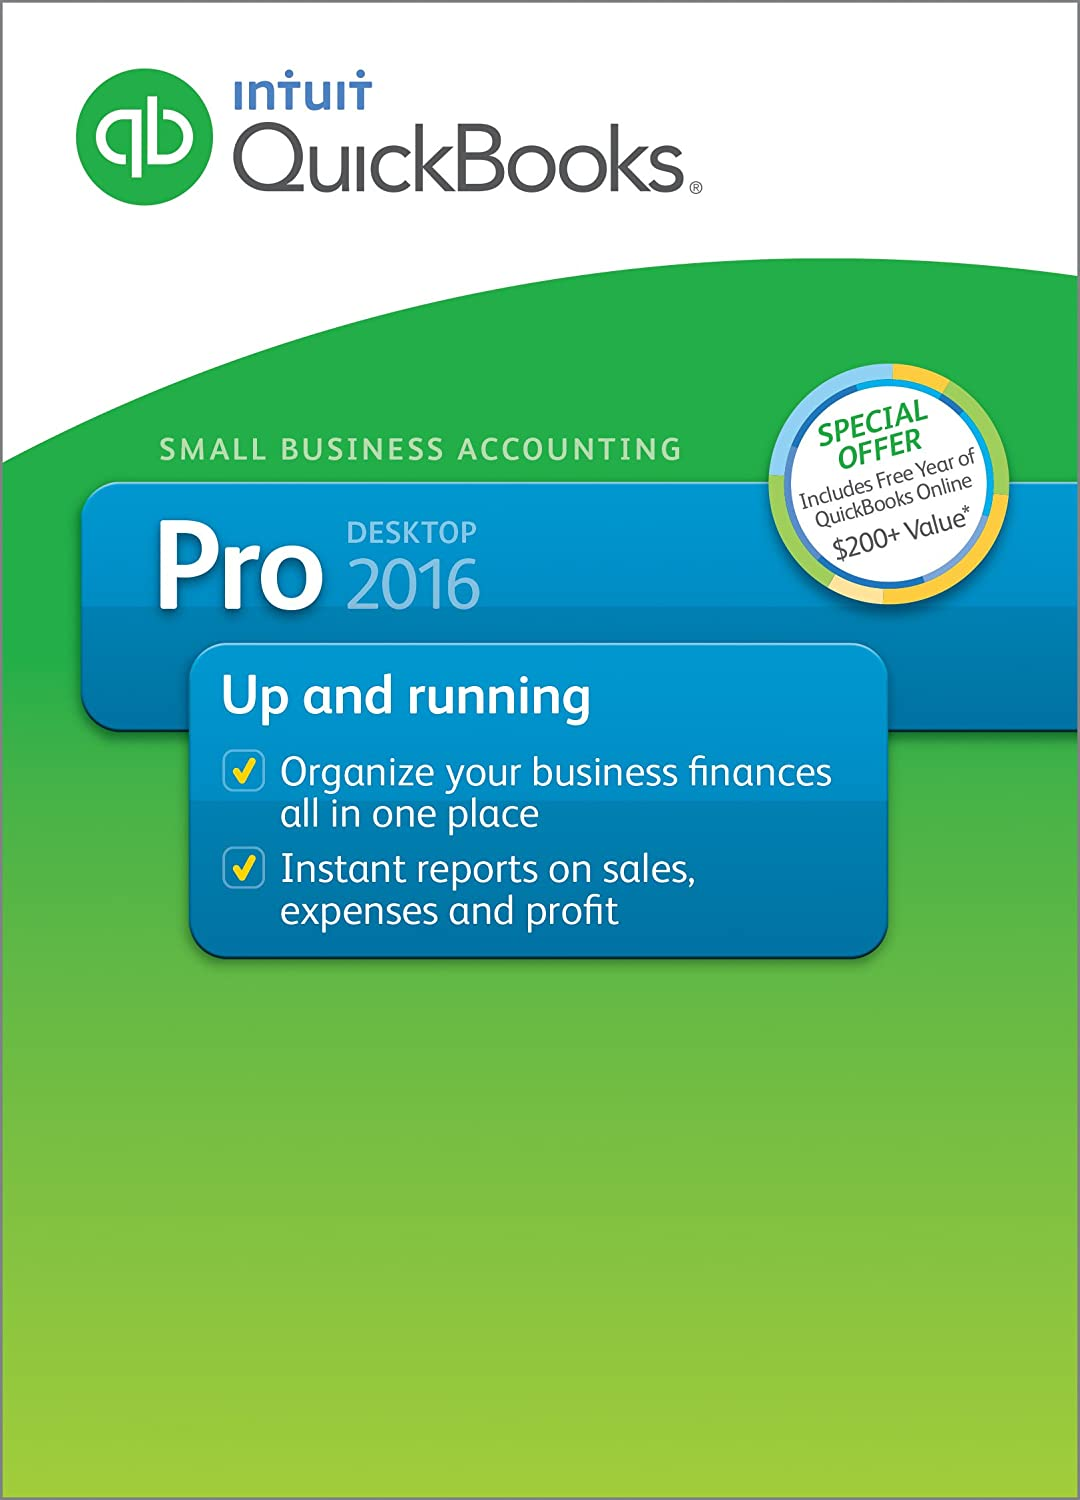 quickbooks pro 2016 download install